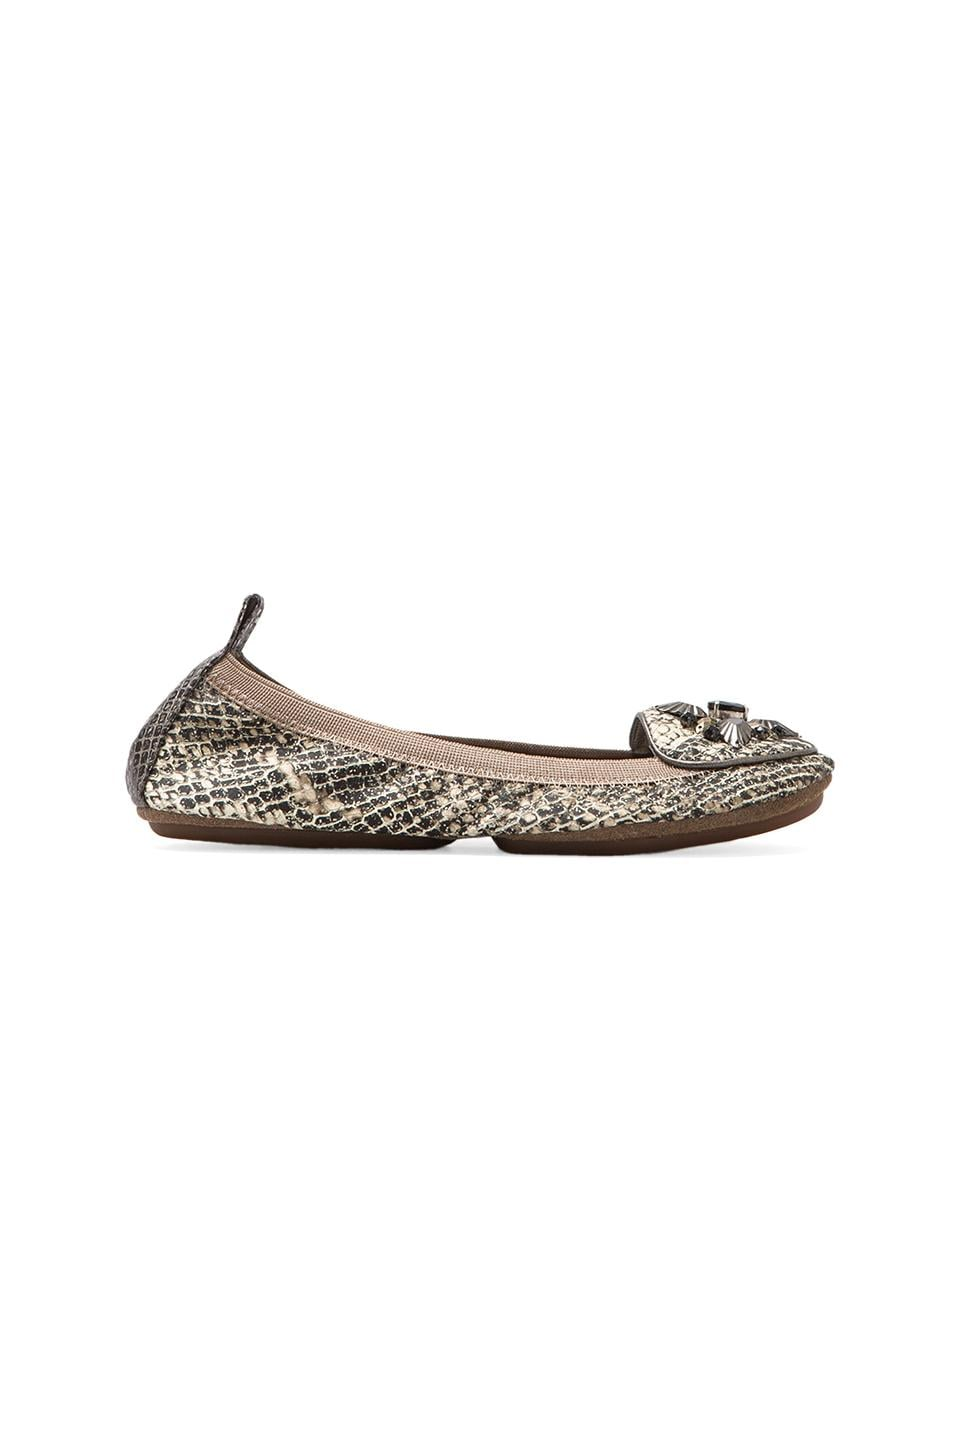 Yosi Samra Rhinestone Loafer in Silver Serpent